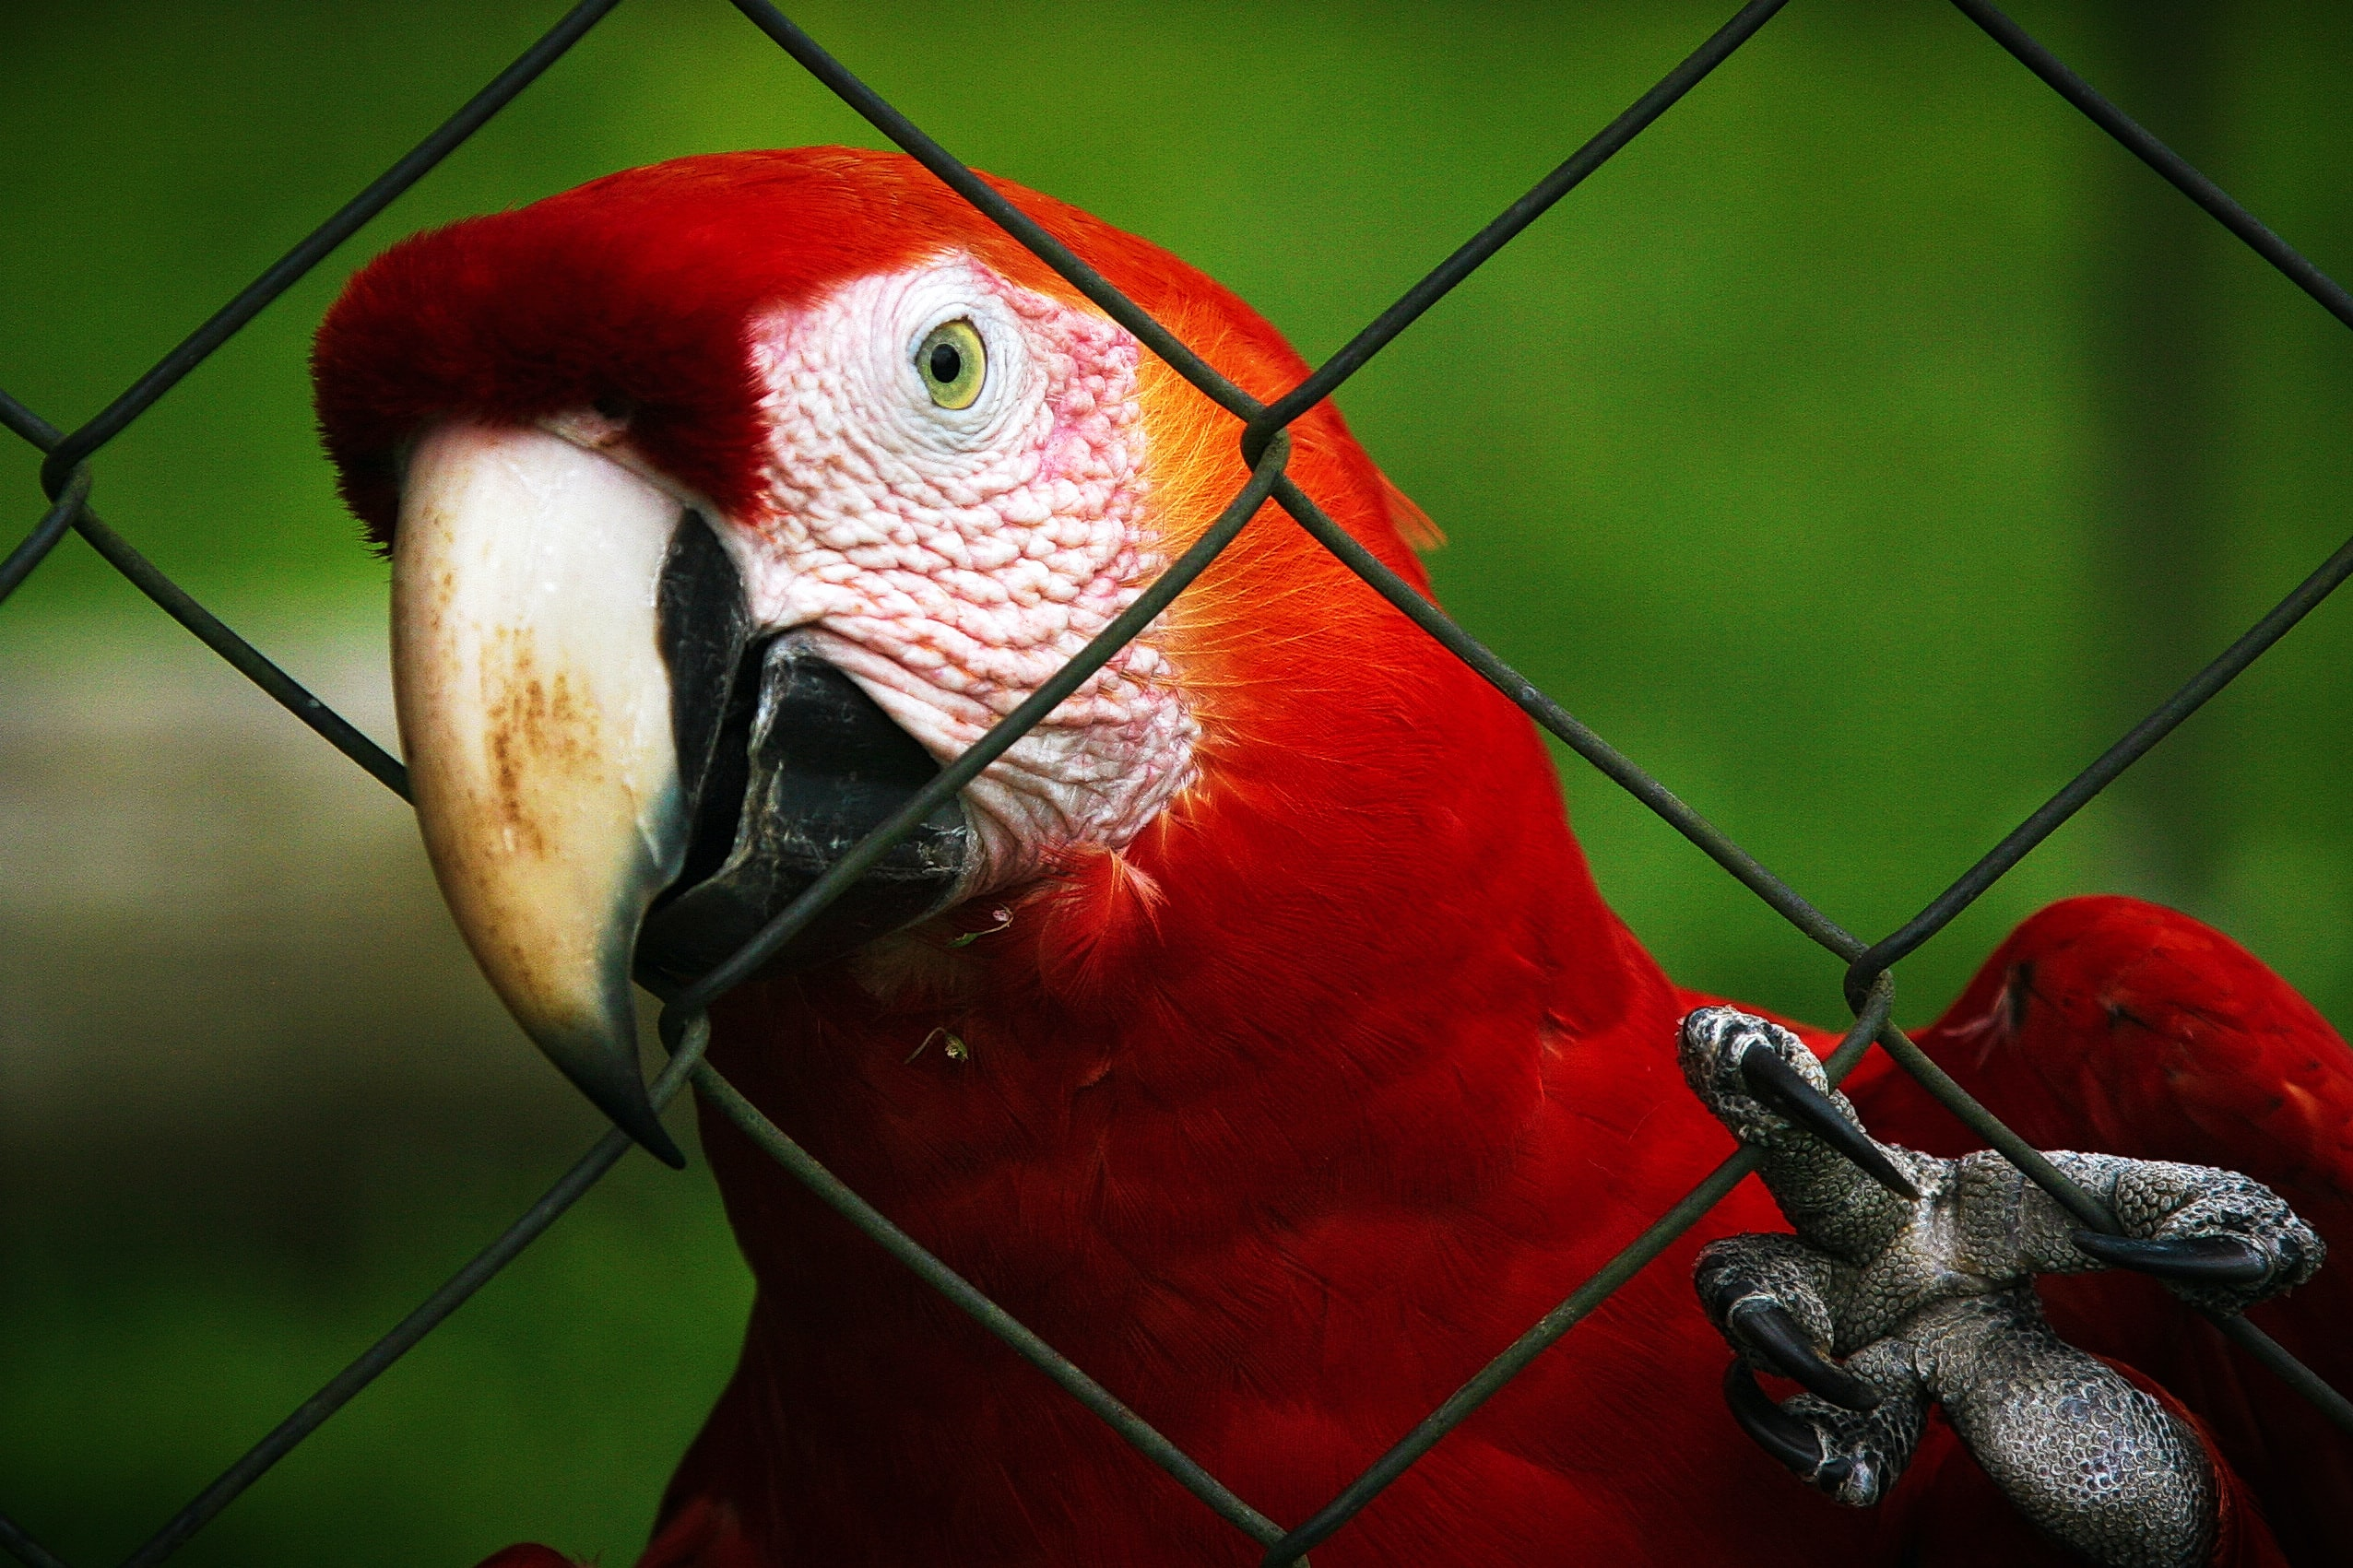 selective focus photography of red macaw parrot